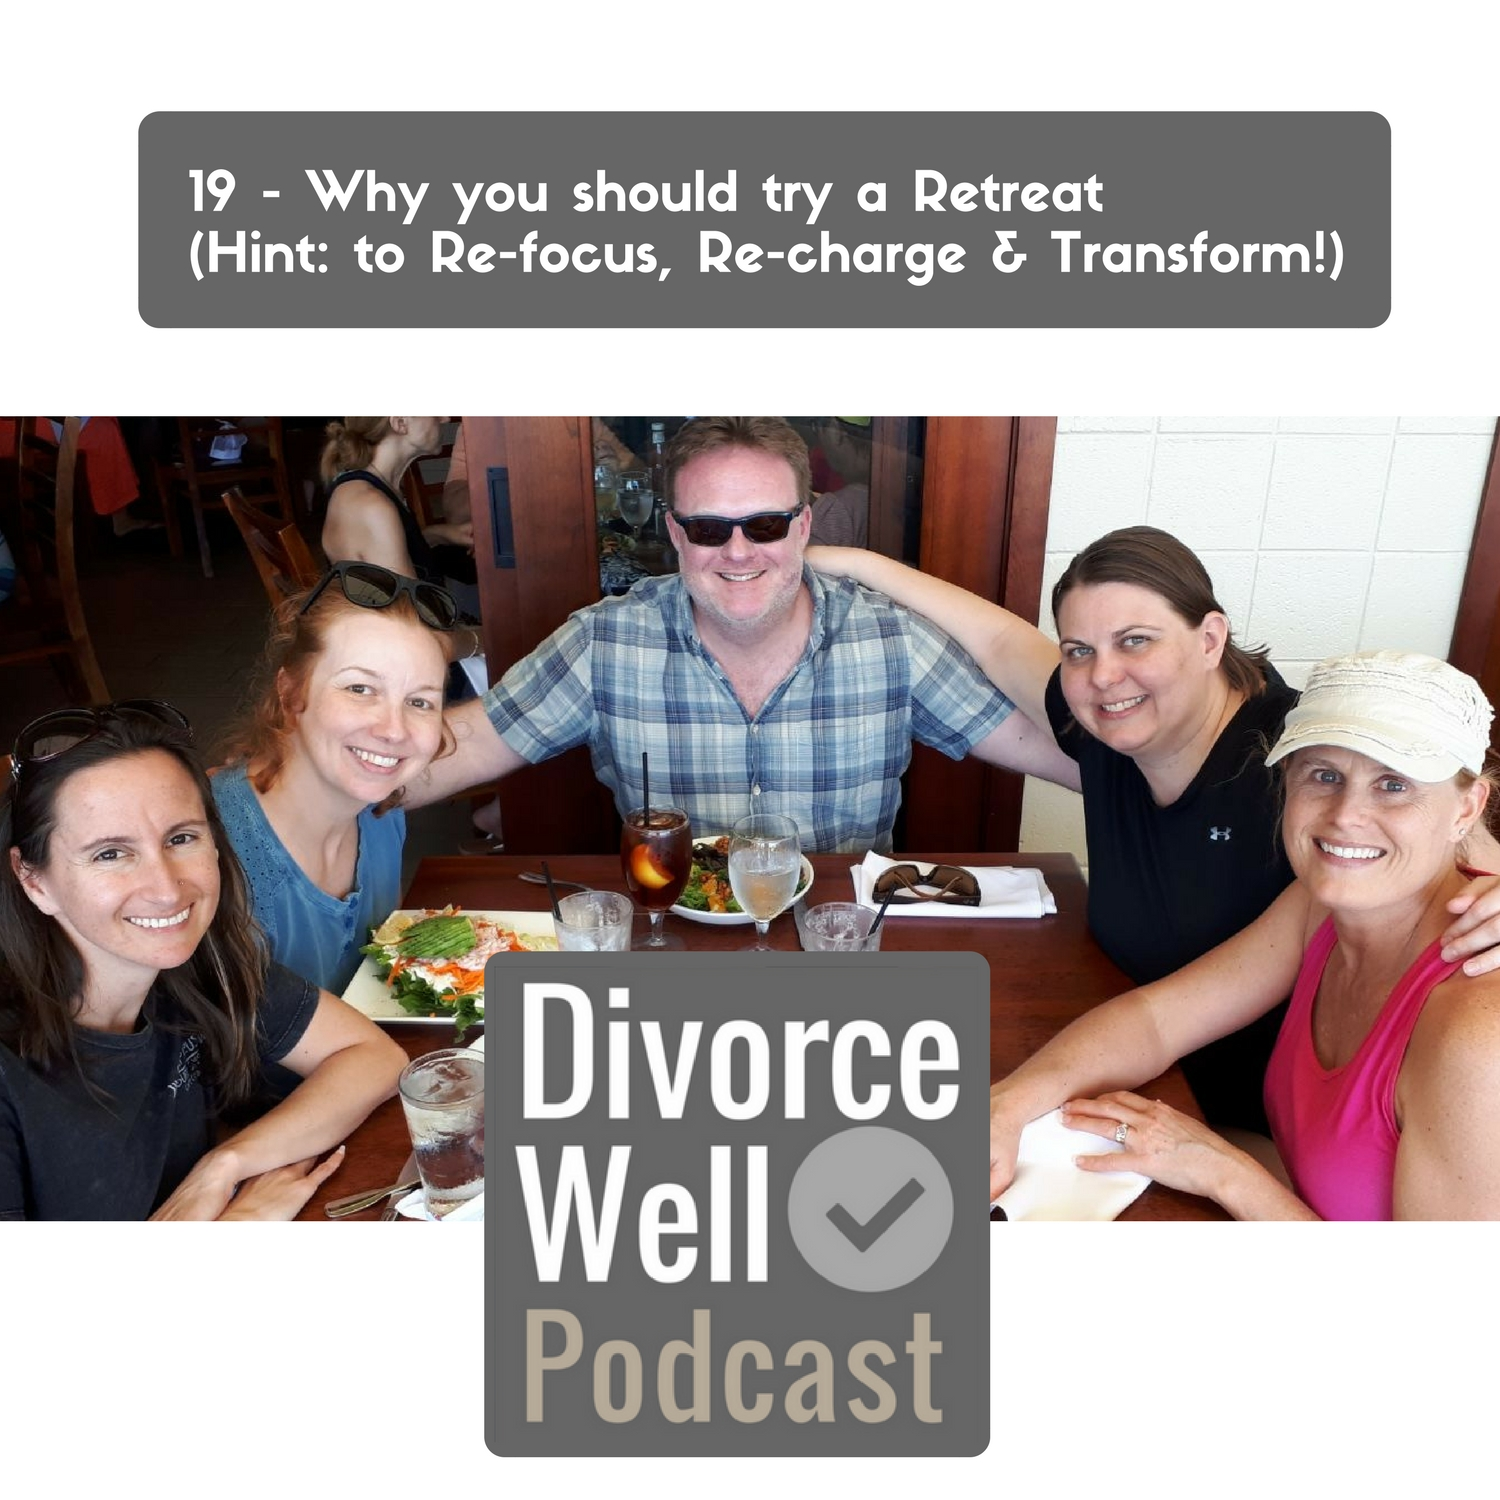 The Divorce Well Podcast - 19 - Why you should try a retreat (Hint: to re-focus, re-charge & transform!)